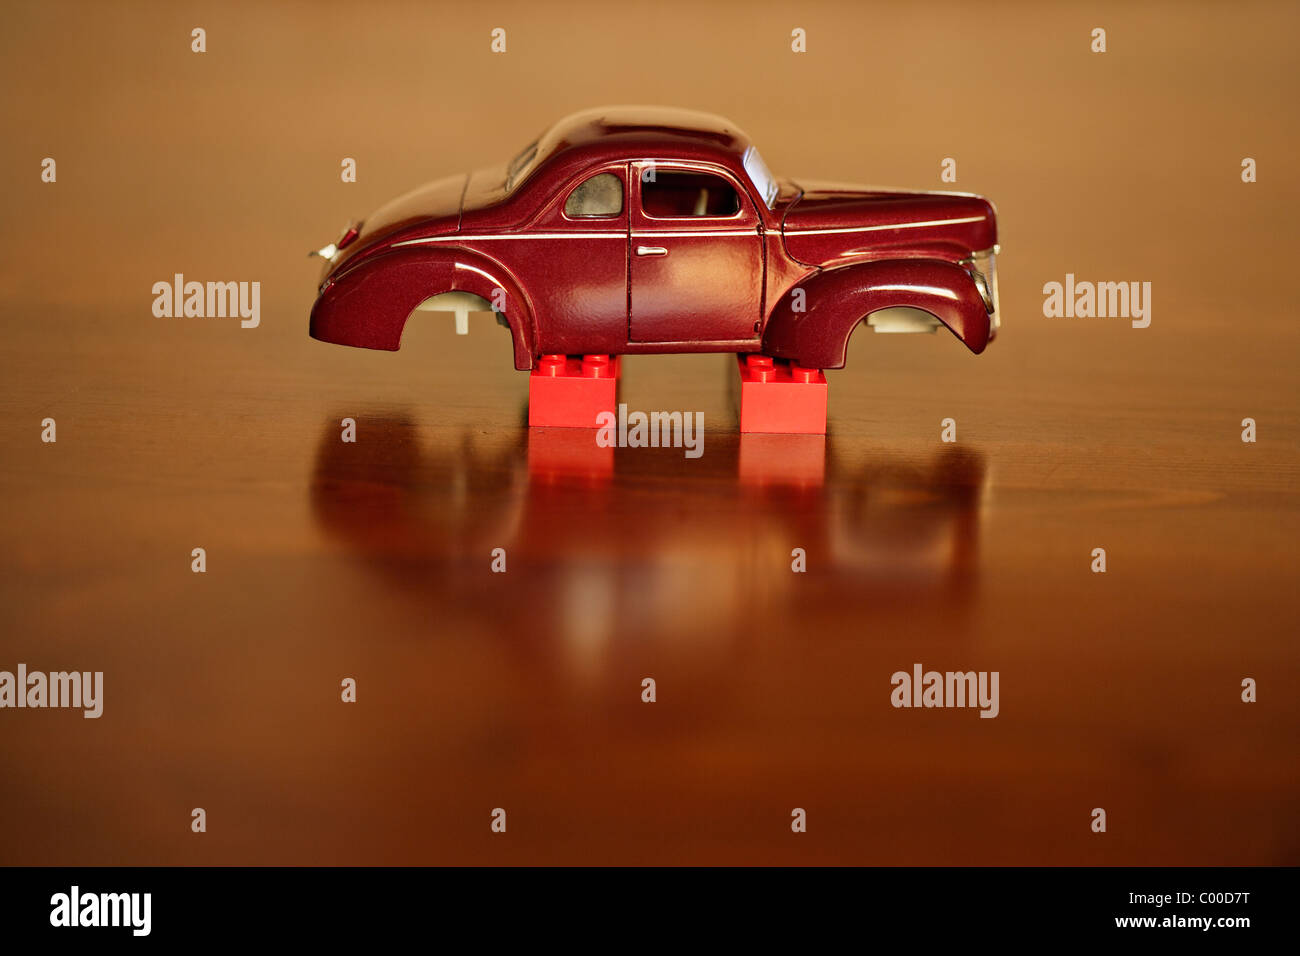 Toy car on blocks with wheels stolen - Stock Image